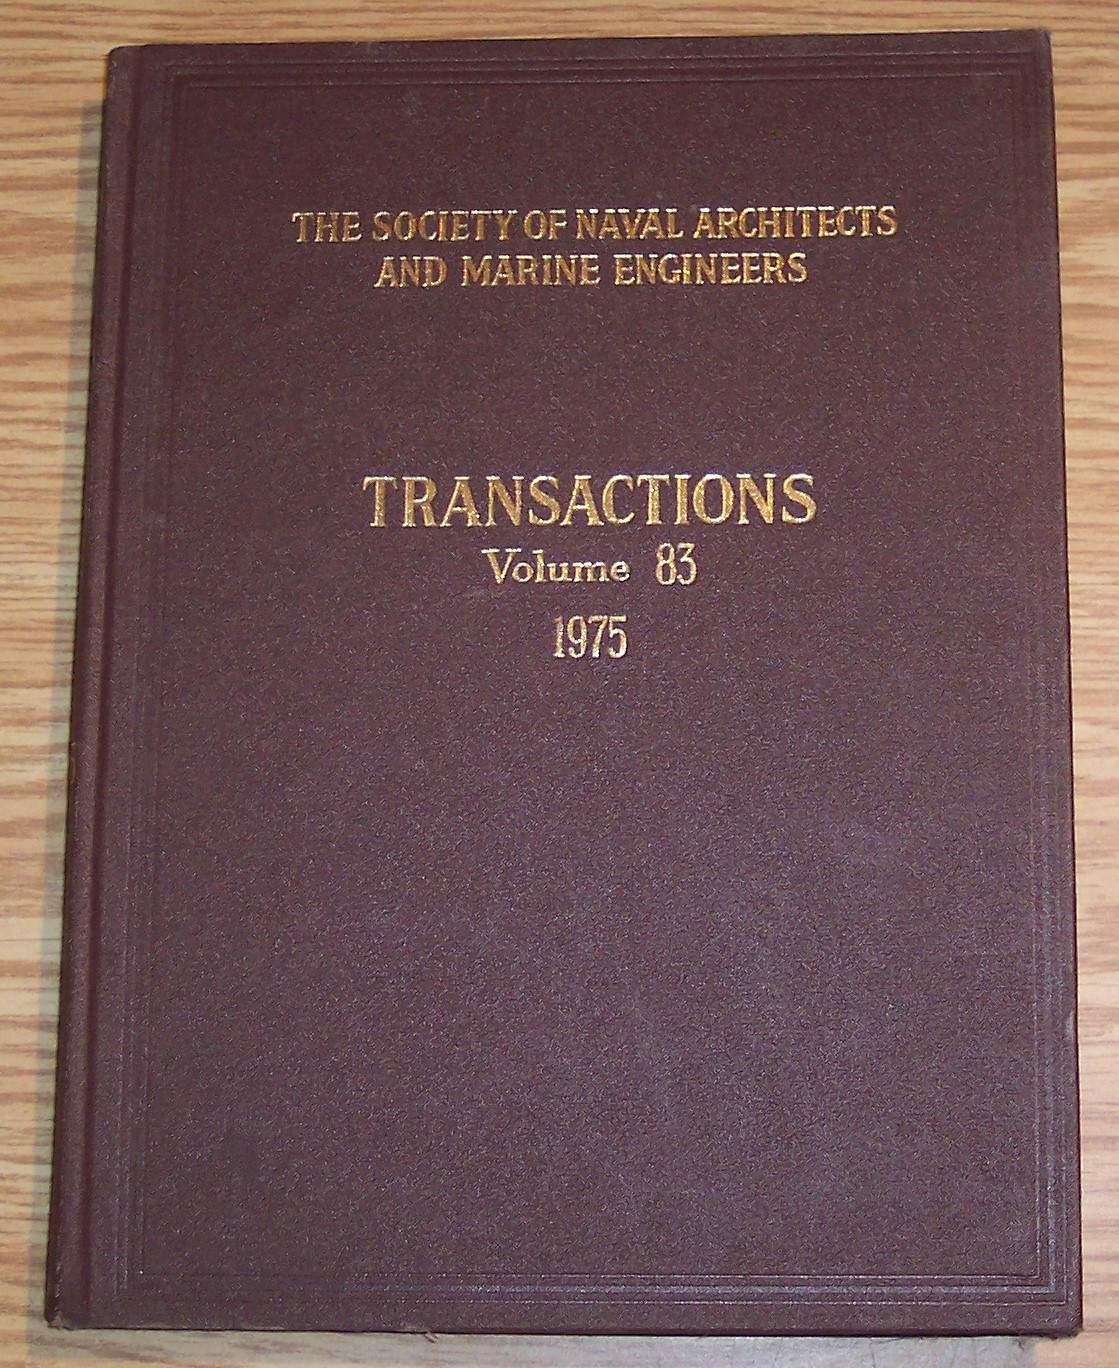 Image for The Society of Naval Architects and Marine Engineers Transactions Volume 83 1975